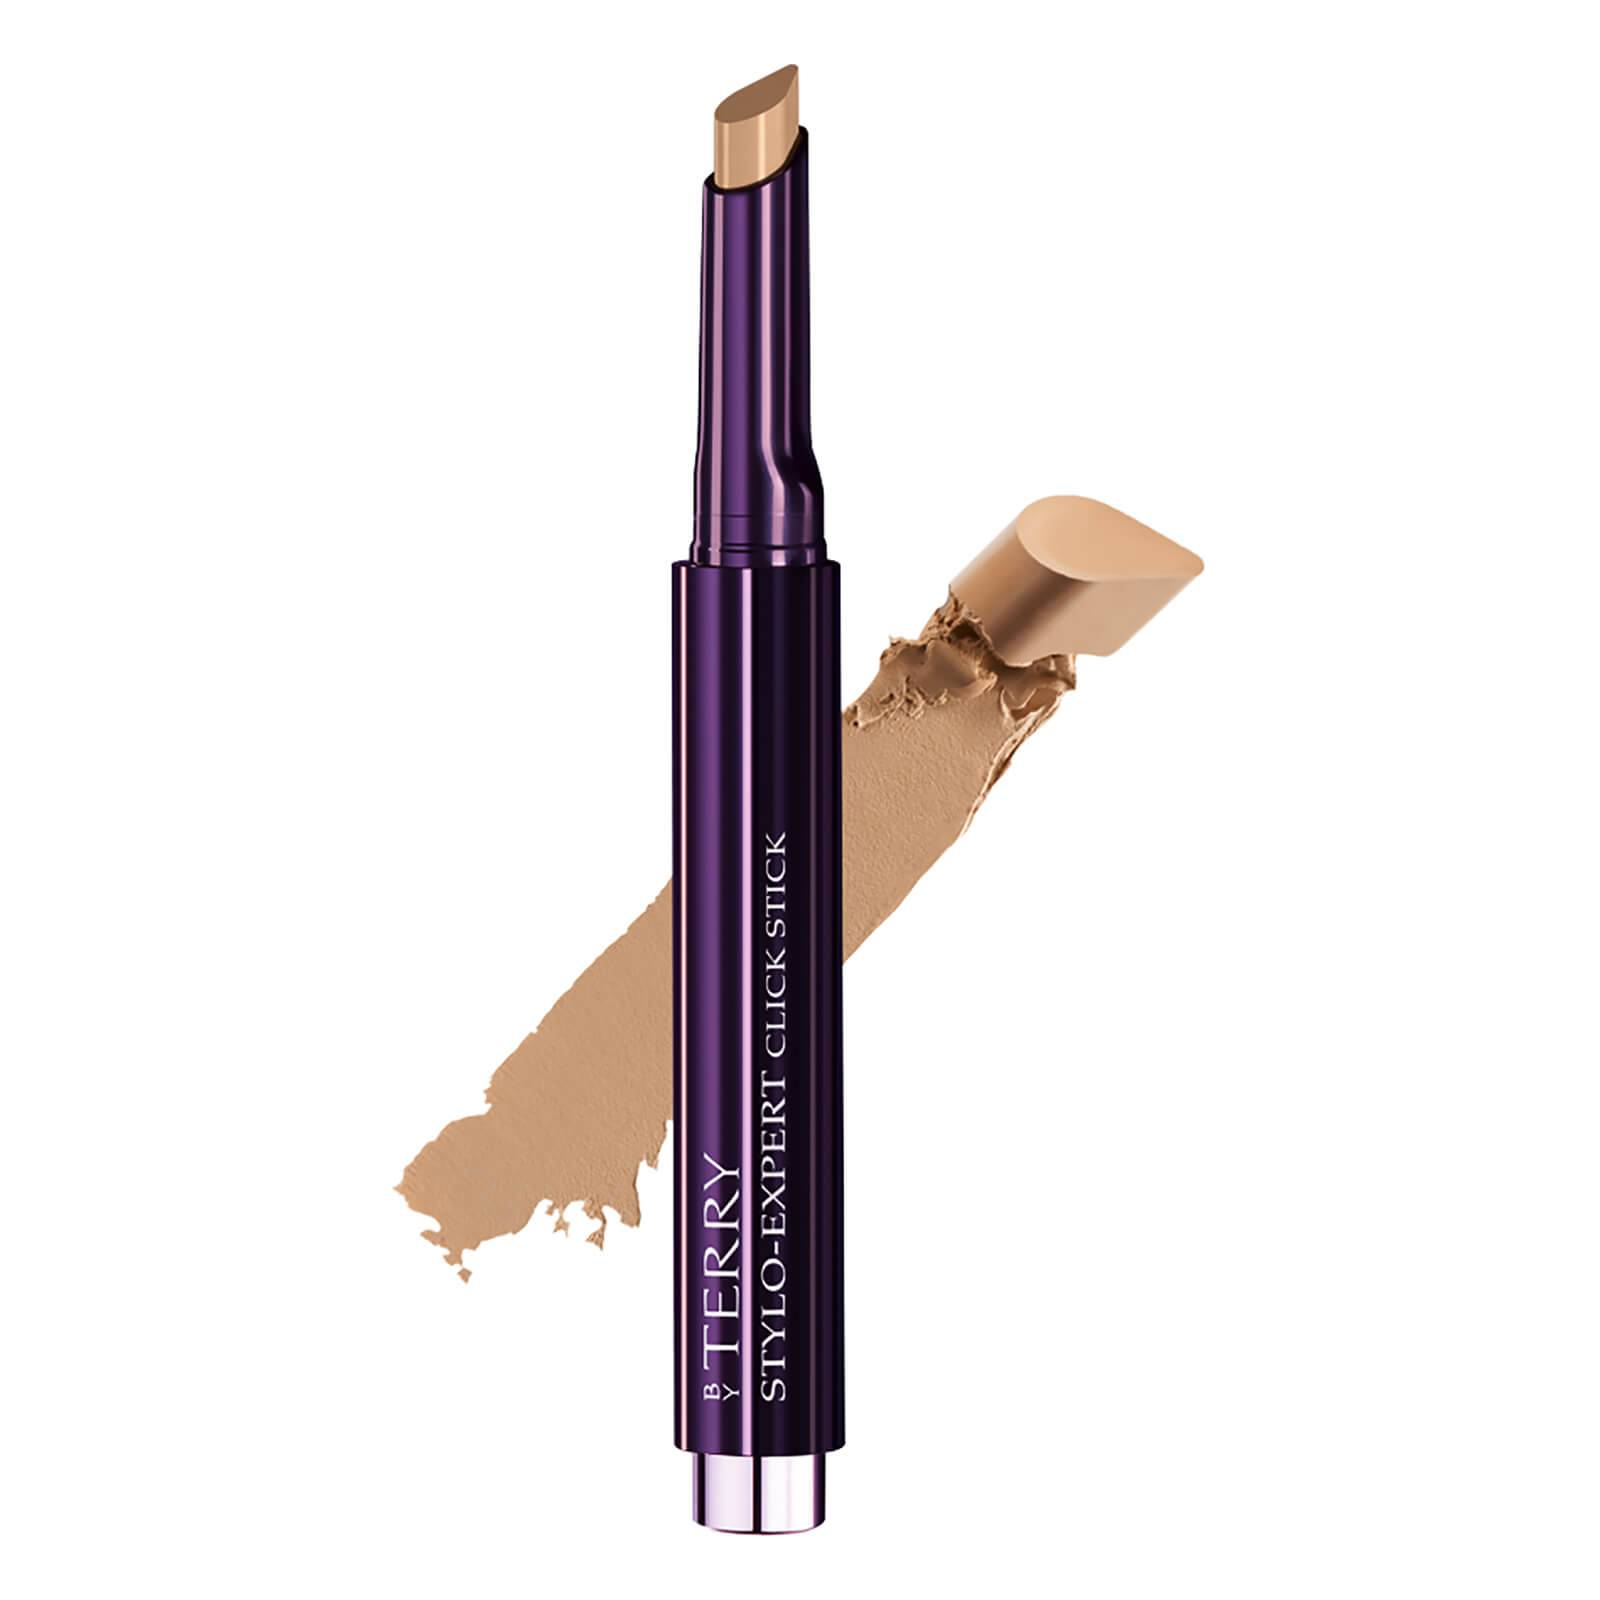 By Terry Stylo-Expert Click Stick Concealer 1g (Various Shades) - No.8 Intense Beige